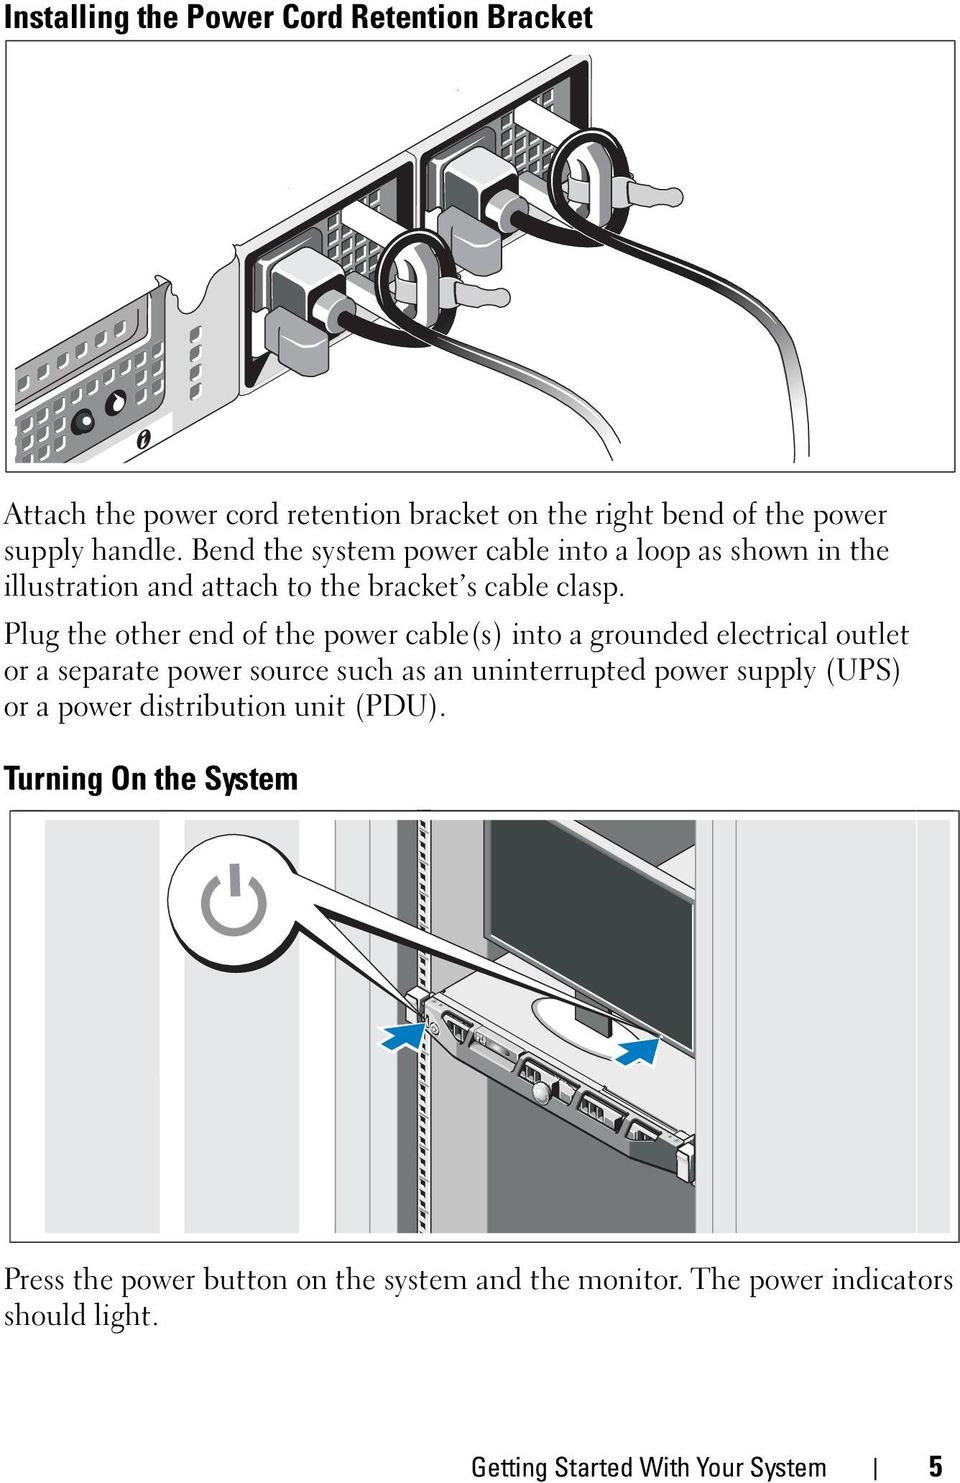 Plug the other end of the power cable(s) into a grounded electrical outlet or a separate power source such as an uninterrupted power supply